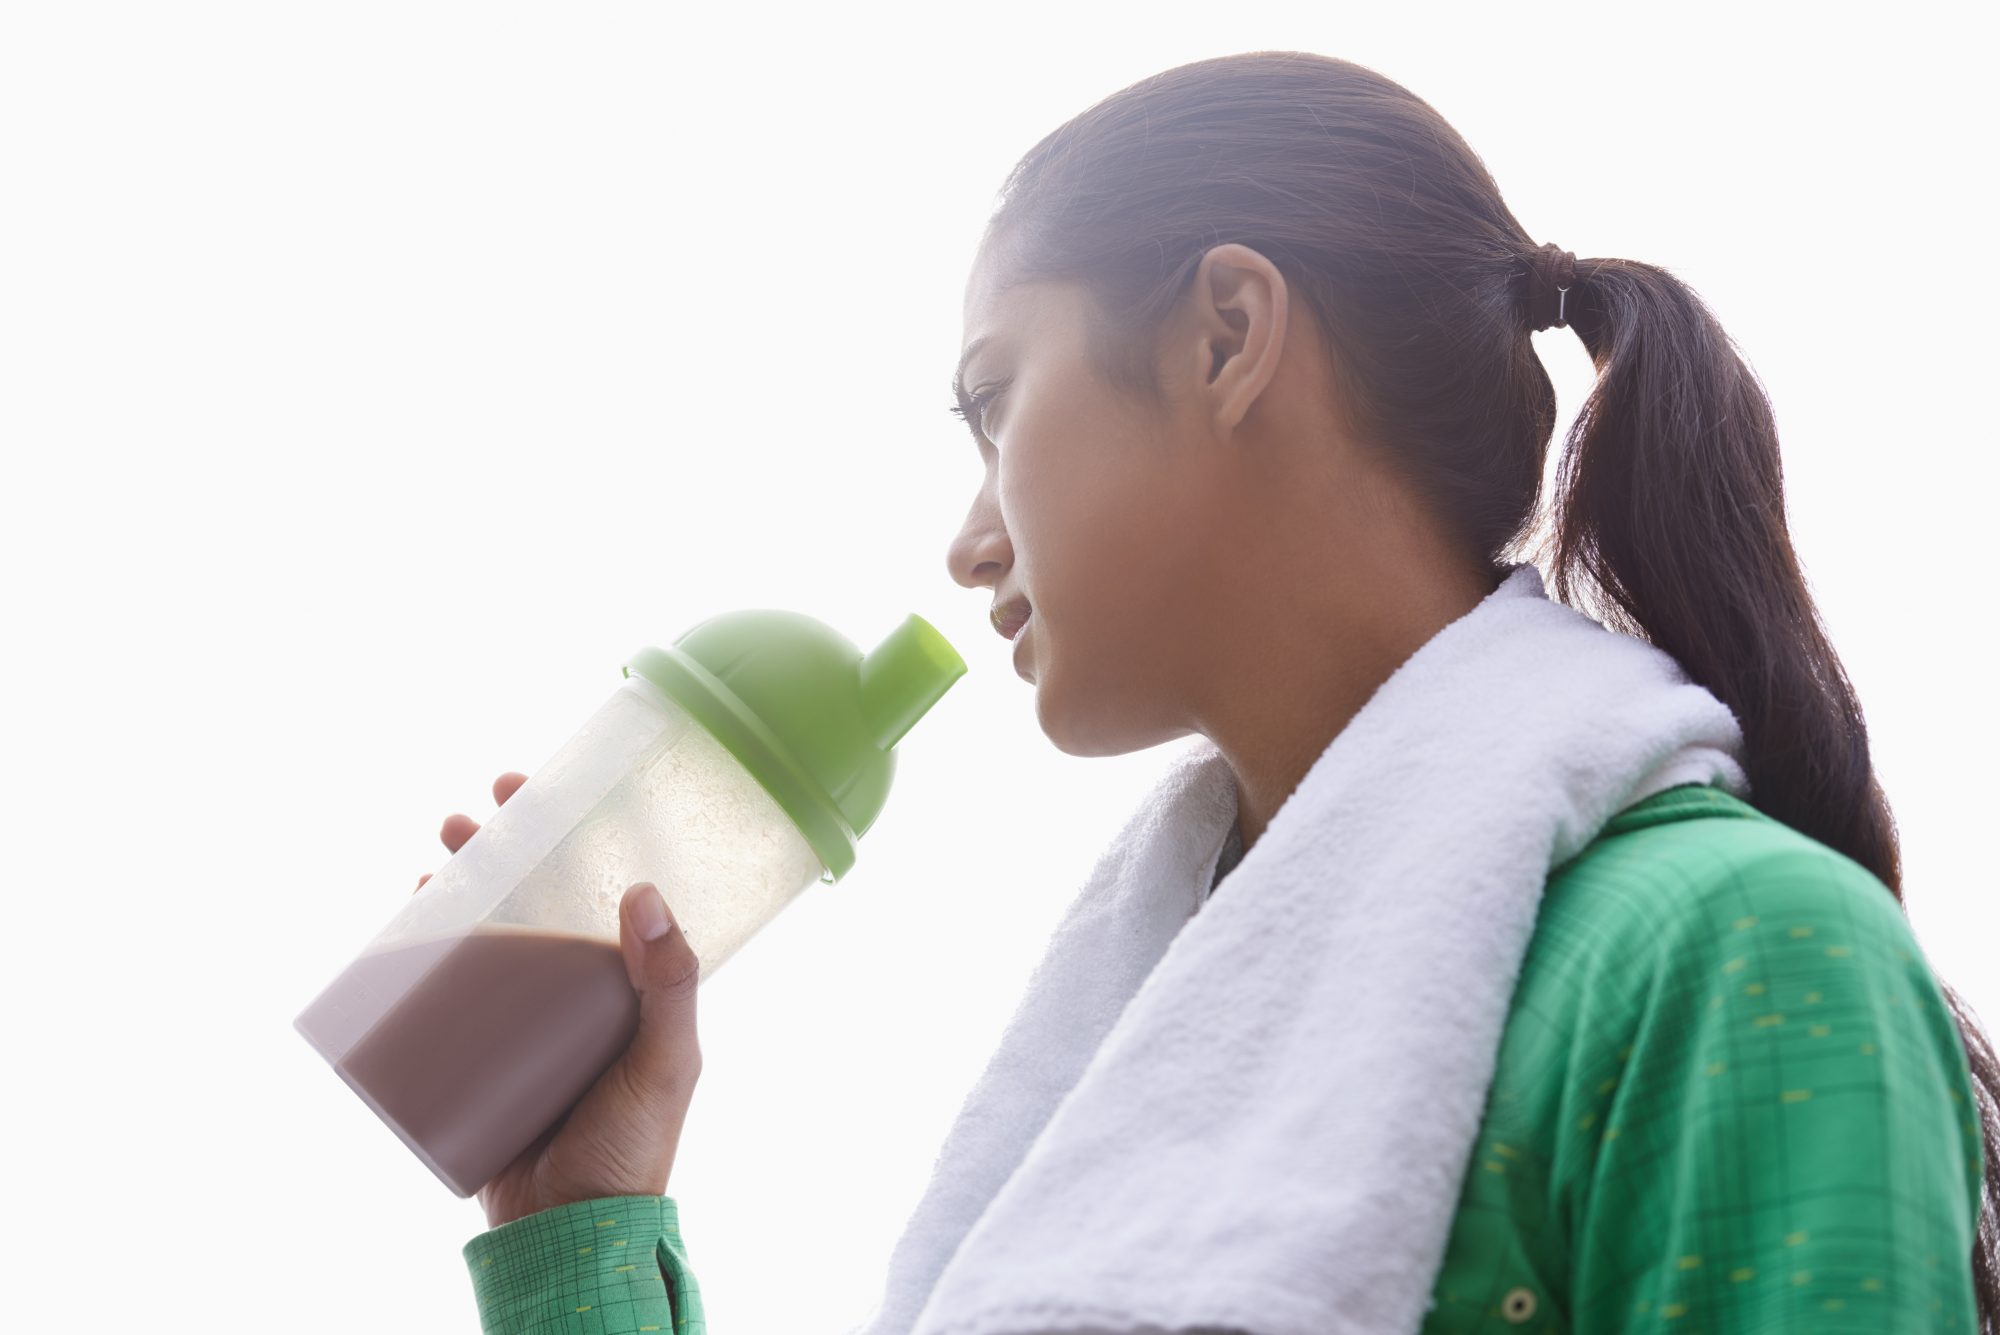 Myth: After a workout, you need to drink a protein shake ASAP